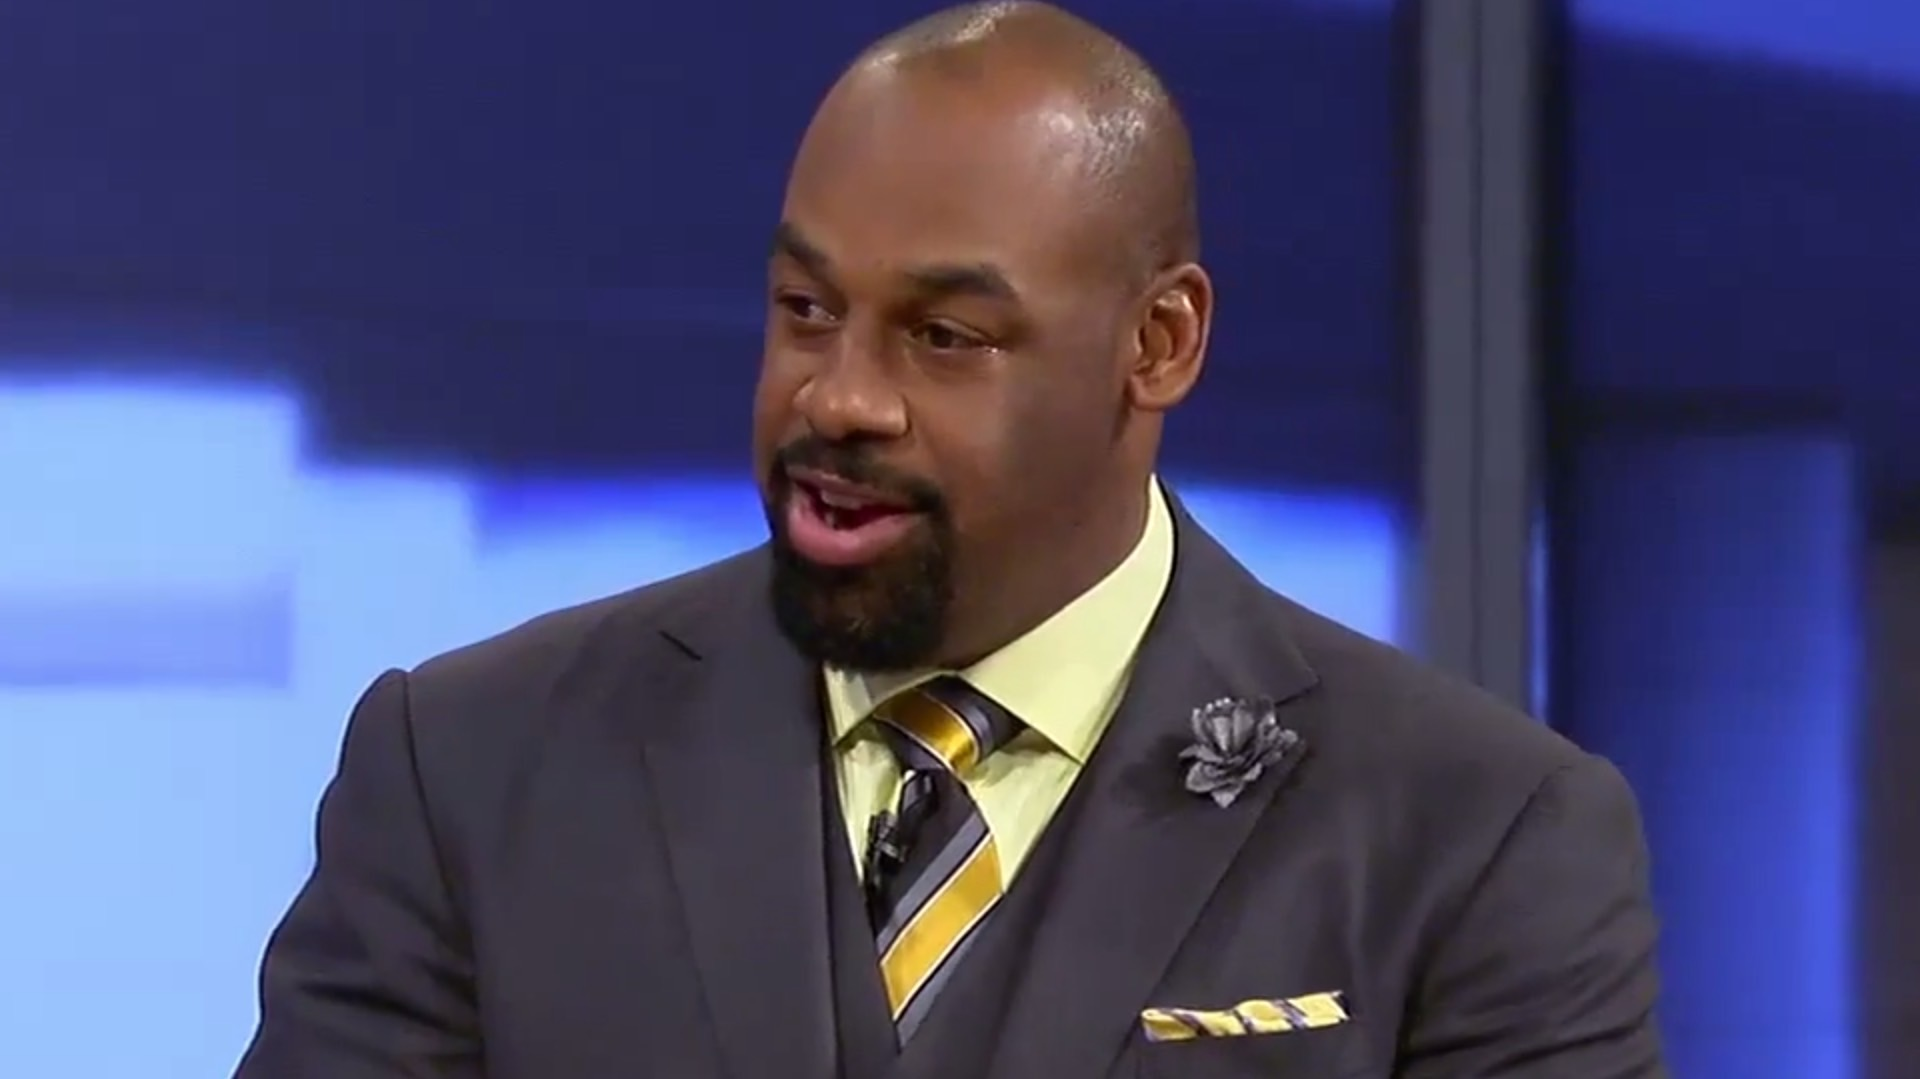 Donovan McNabb arrested on second DUI charge in two years